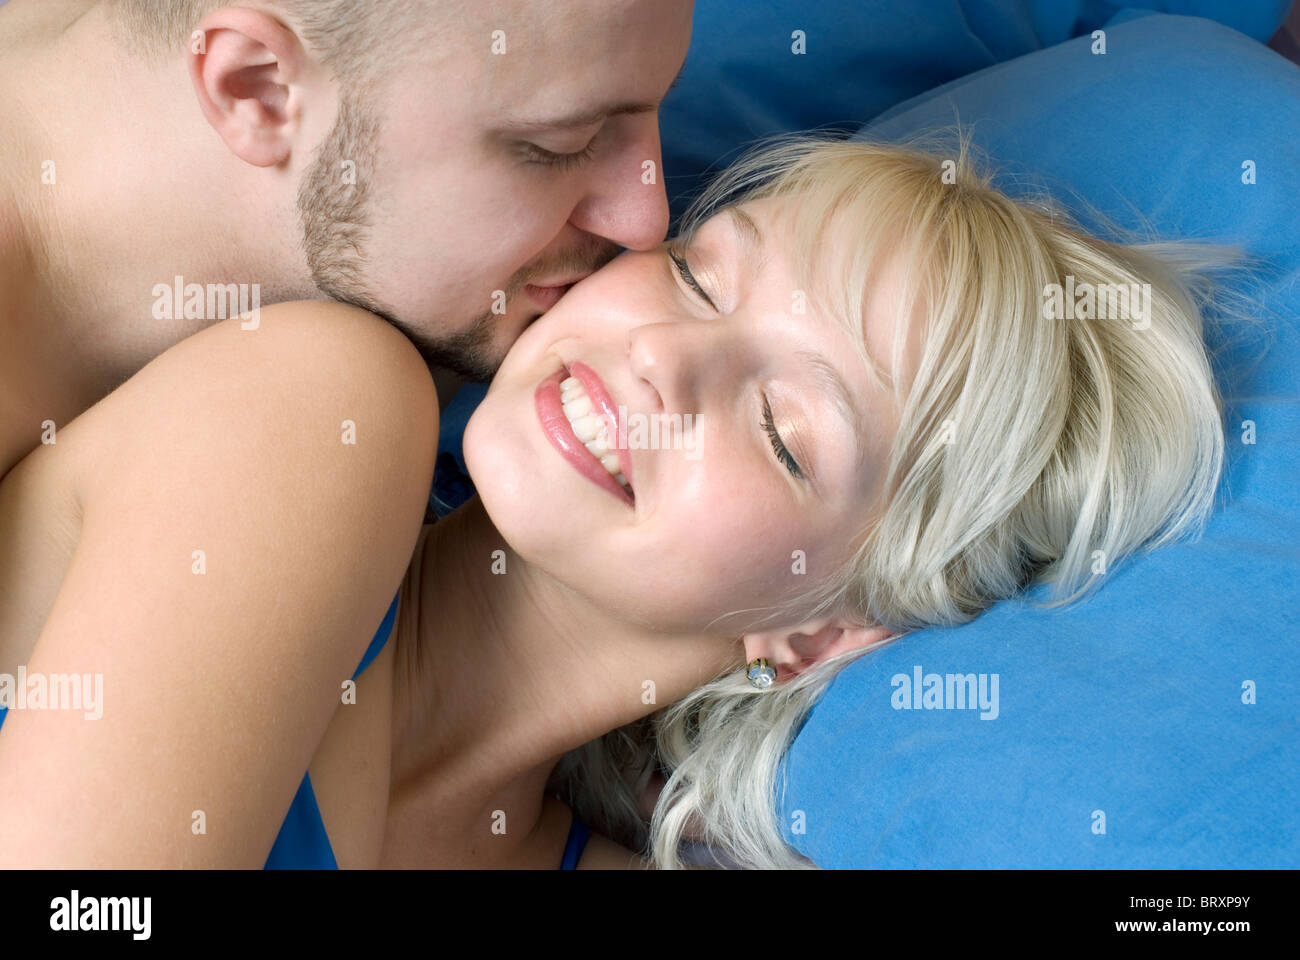 Close Up Of Young Man Kissing Woman In Bed